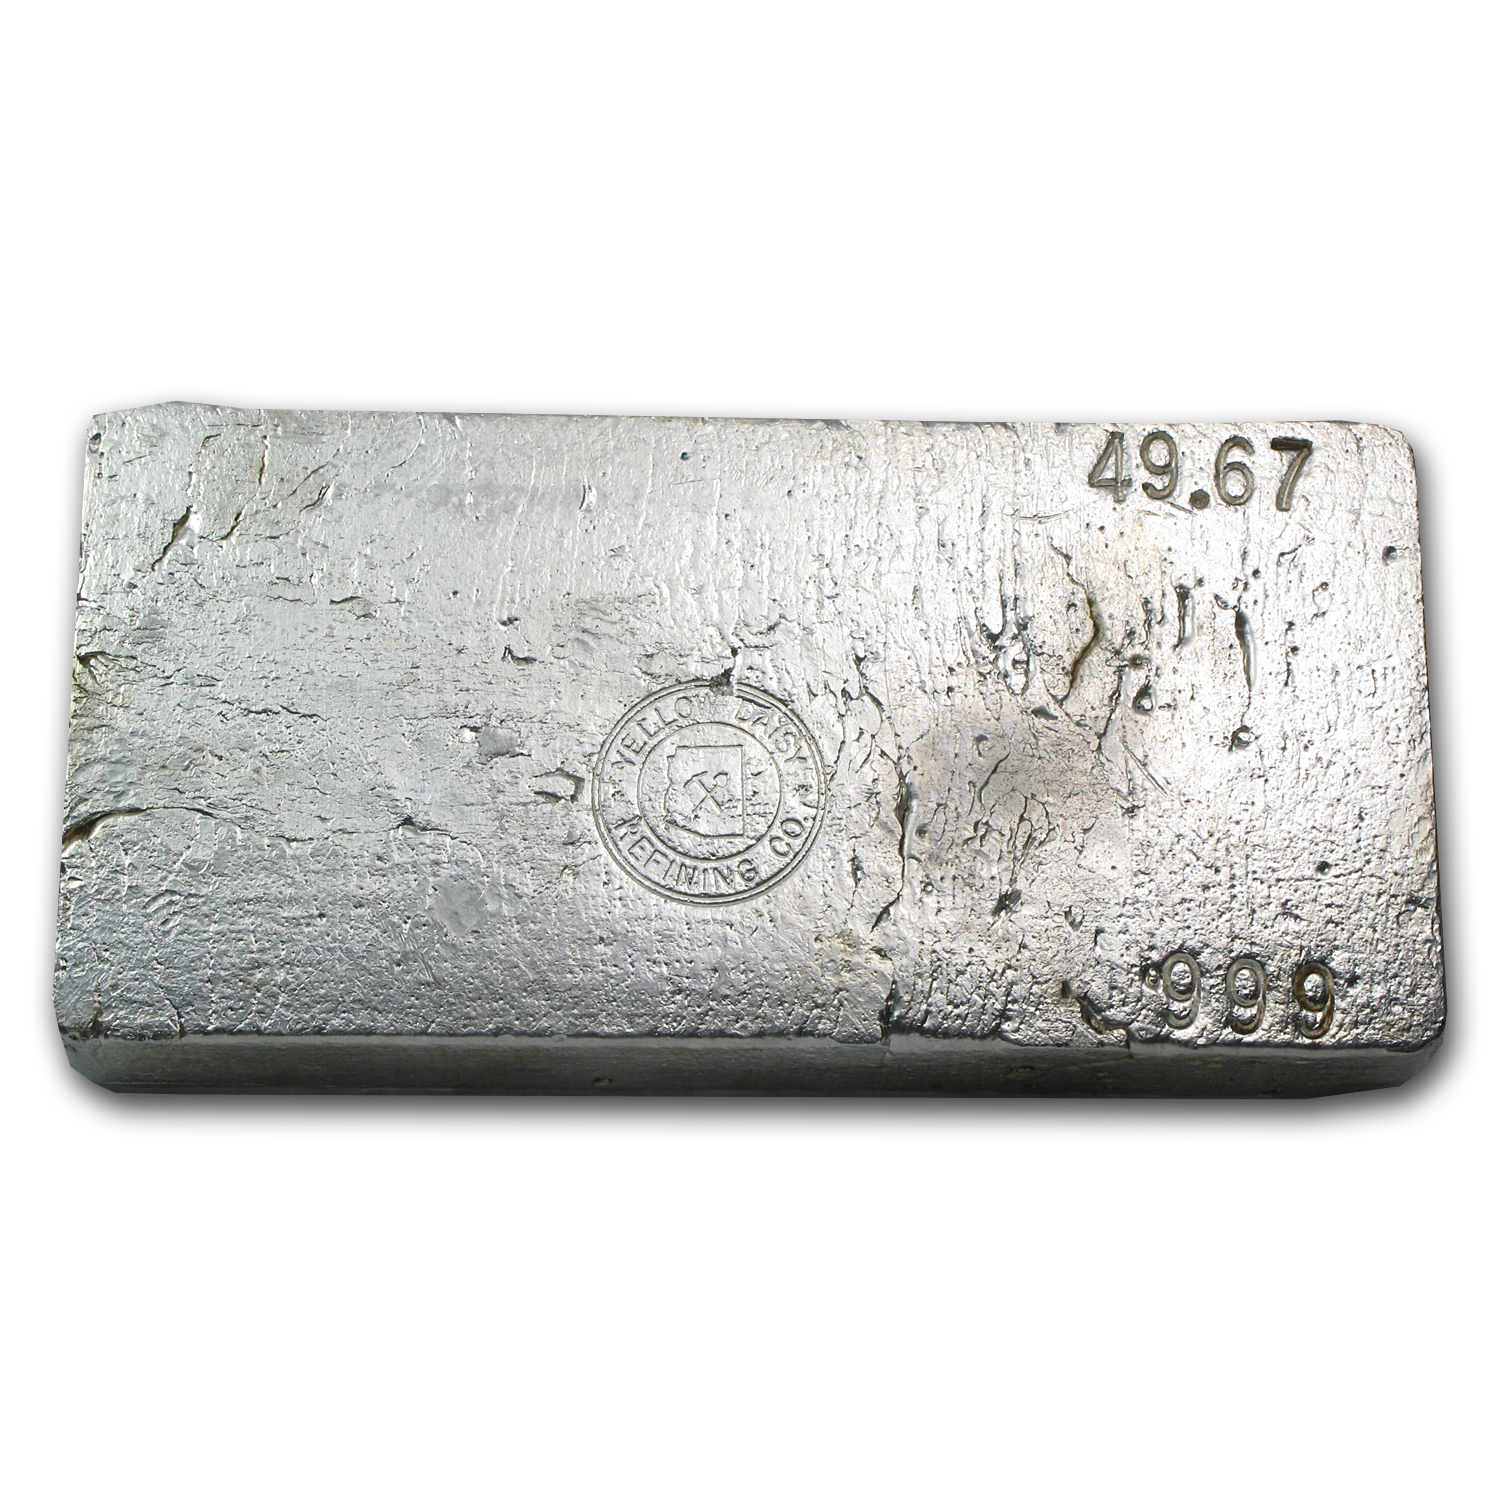 49.67 oz Silver Bars - Yellow Daisy Refining Co.